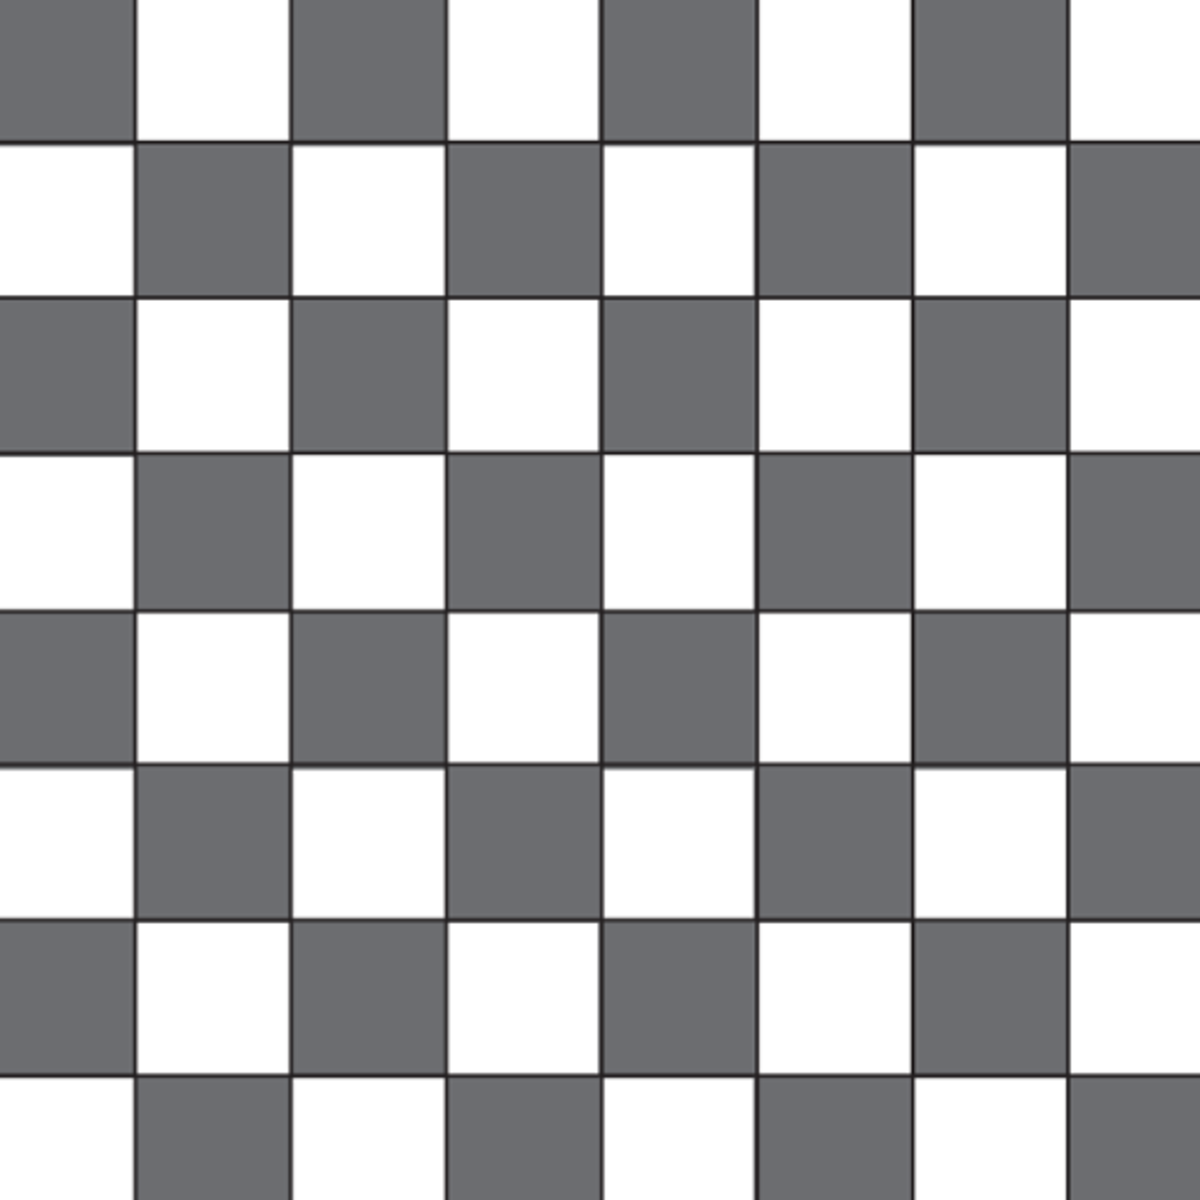 Checkers or chess board.